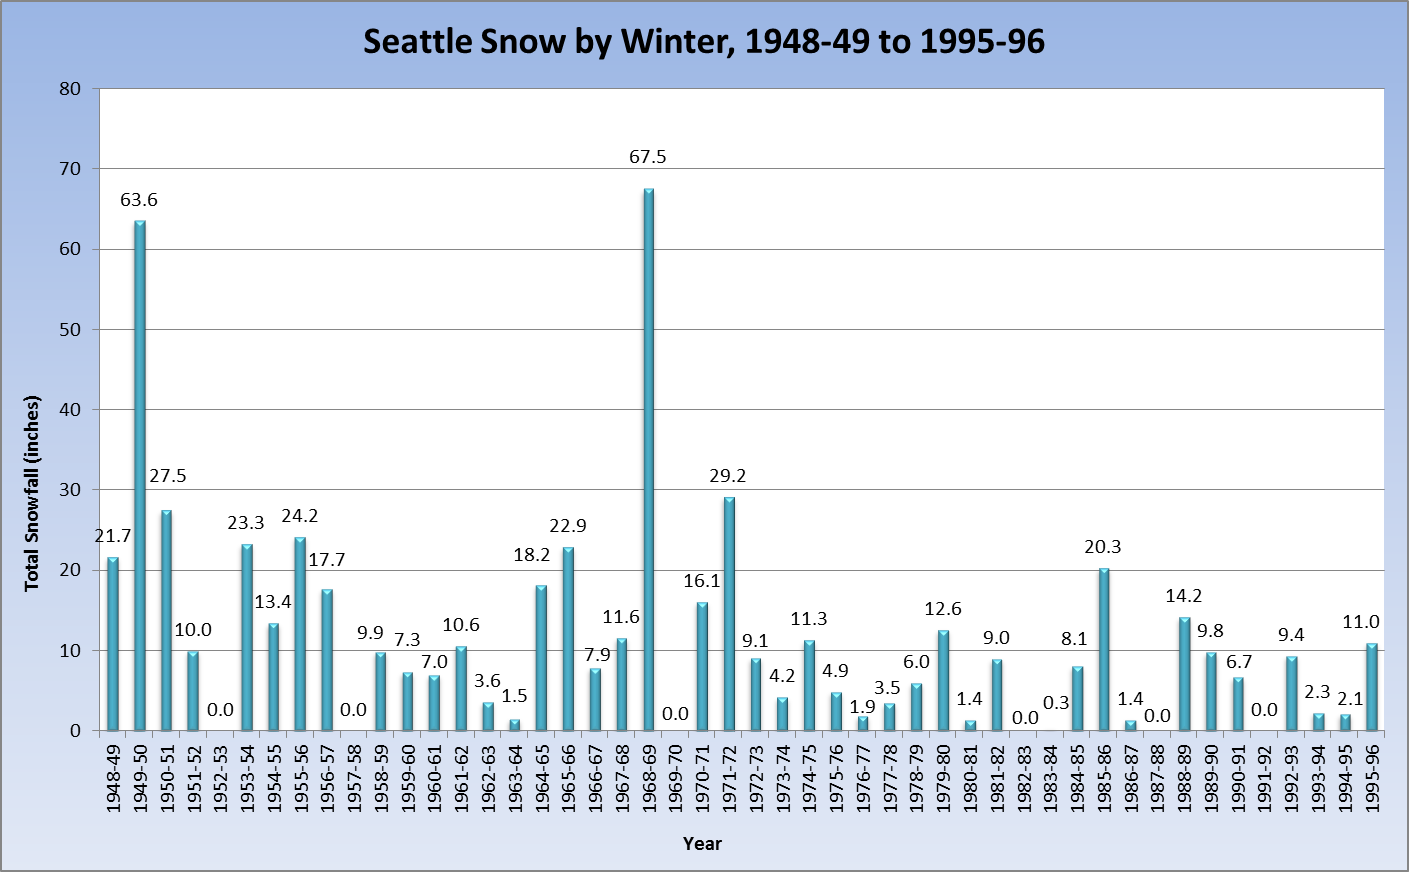 The Winter Of 1968 69 Stands As Sea Tacs Snowiest With A Whopping